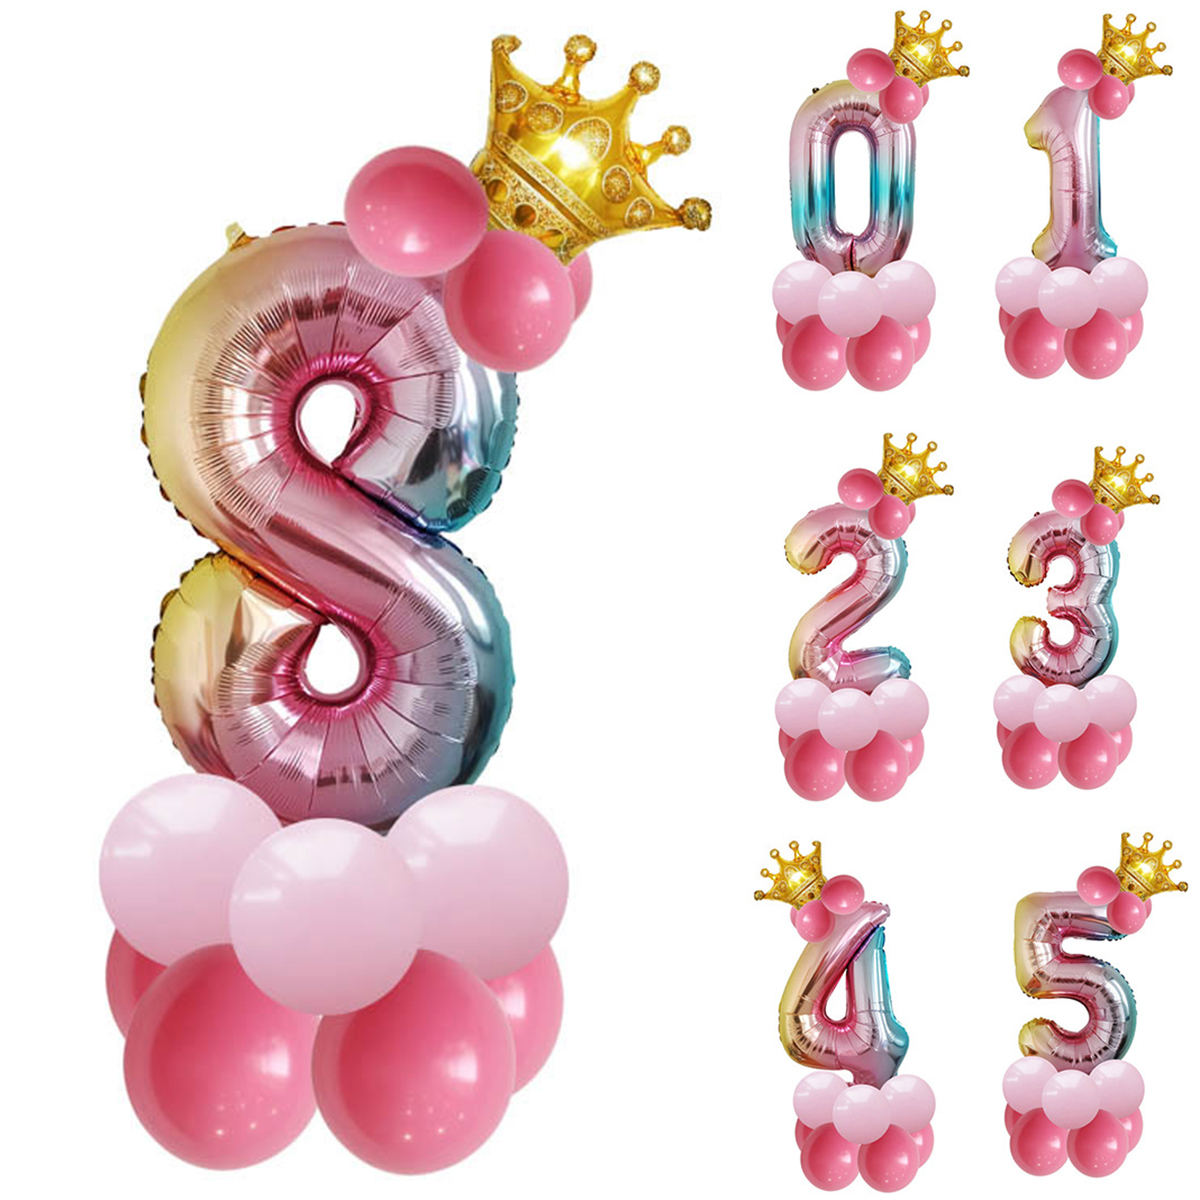 1pc Rose Gold Silver Aluminium Foil Number Balloons 0-9 Birthday Wedding Engagement Party Decor Globo Kids Ball Supplies